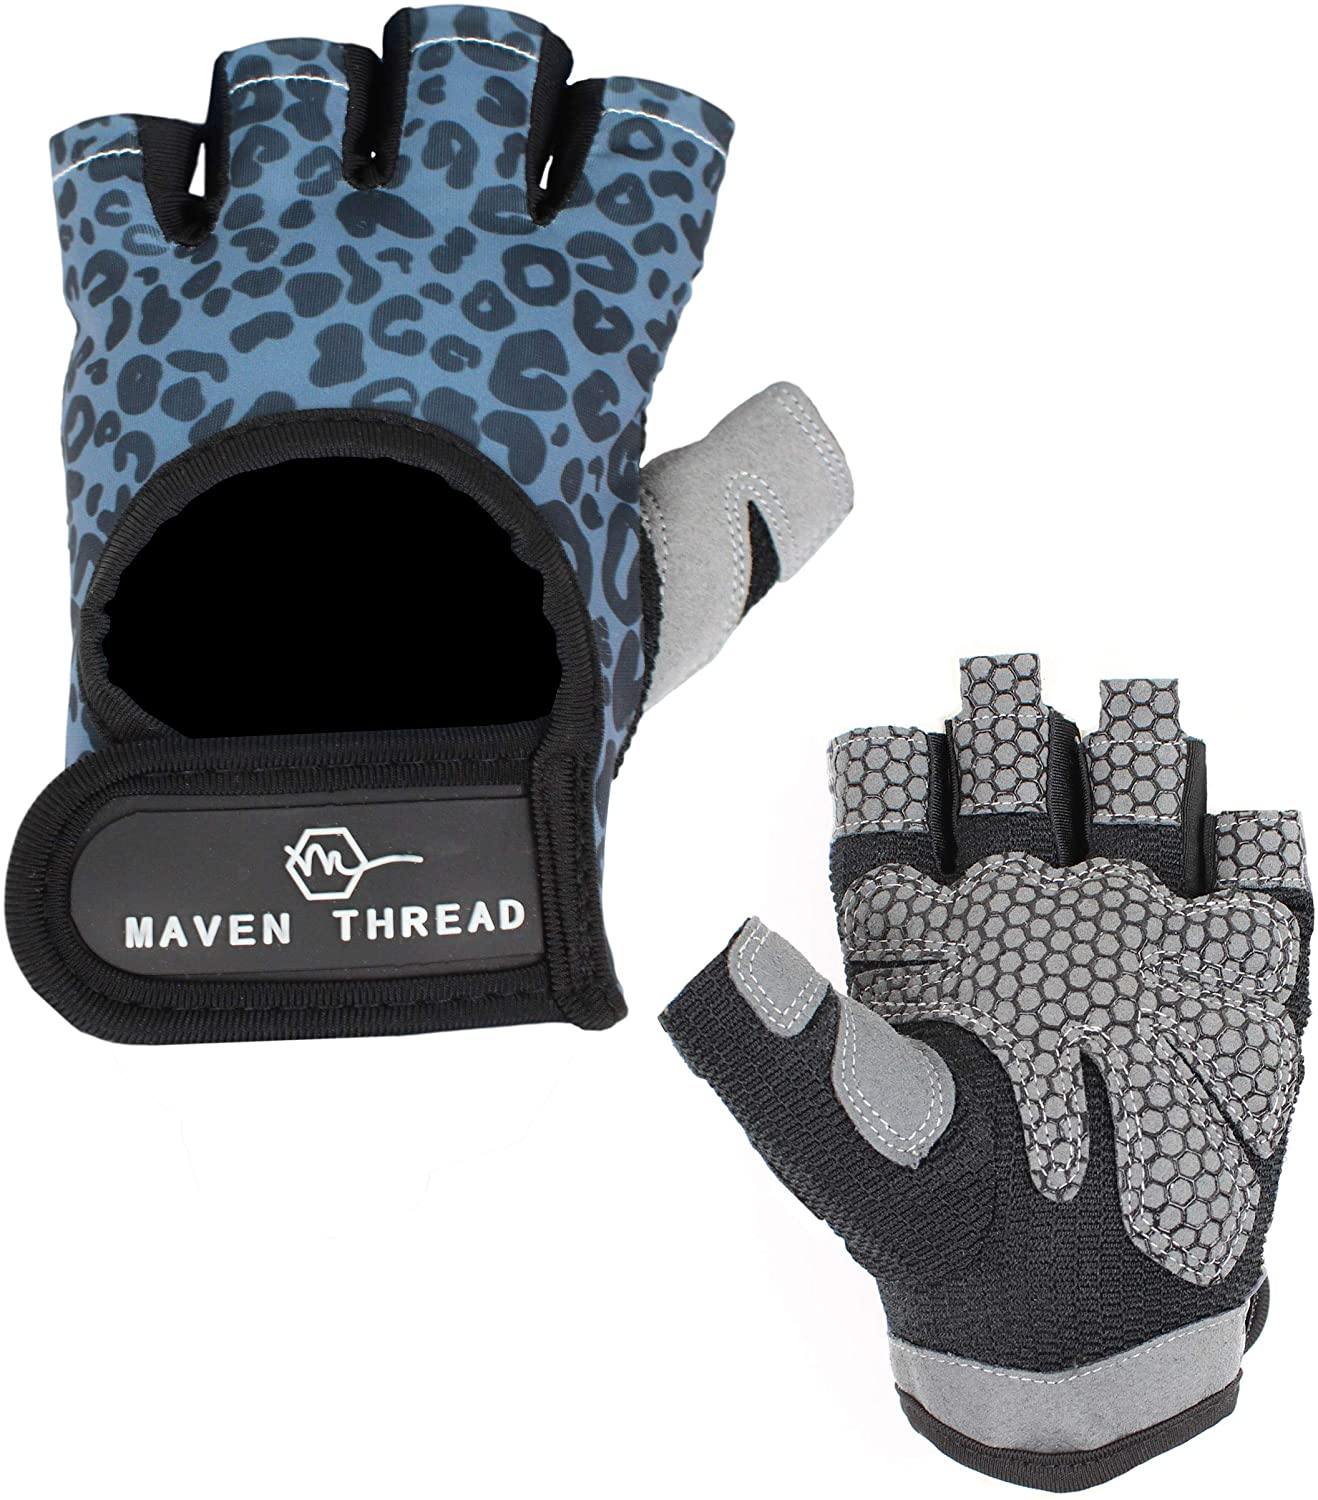 Maven Thread Women's Lightweight Stretchy Designed Workout Gloves for Weight Lifting Exercise Non Slip Fingerless Machine Washable Tabs for Removal